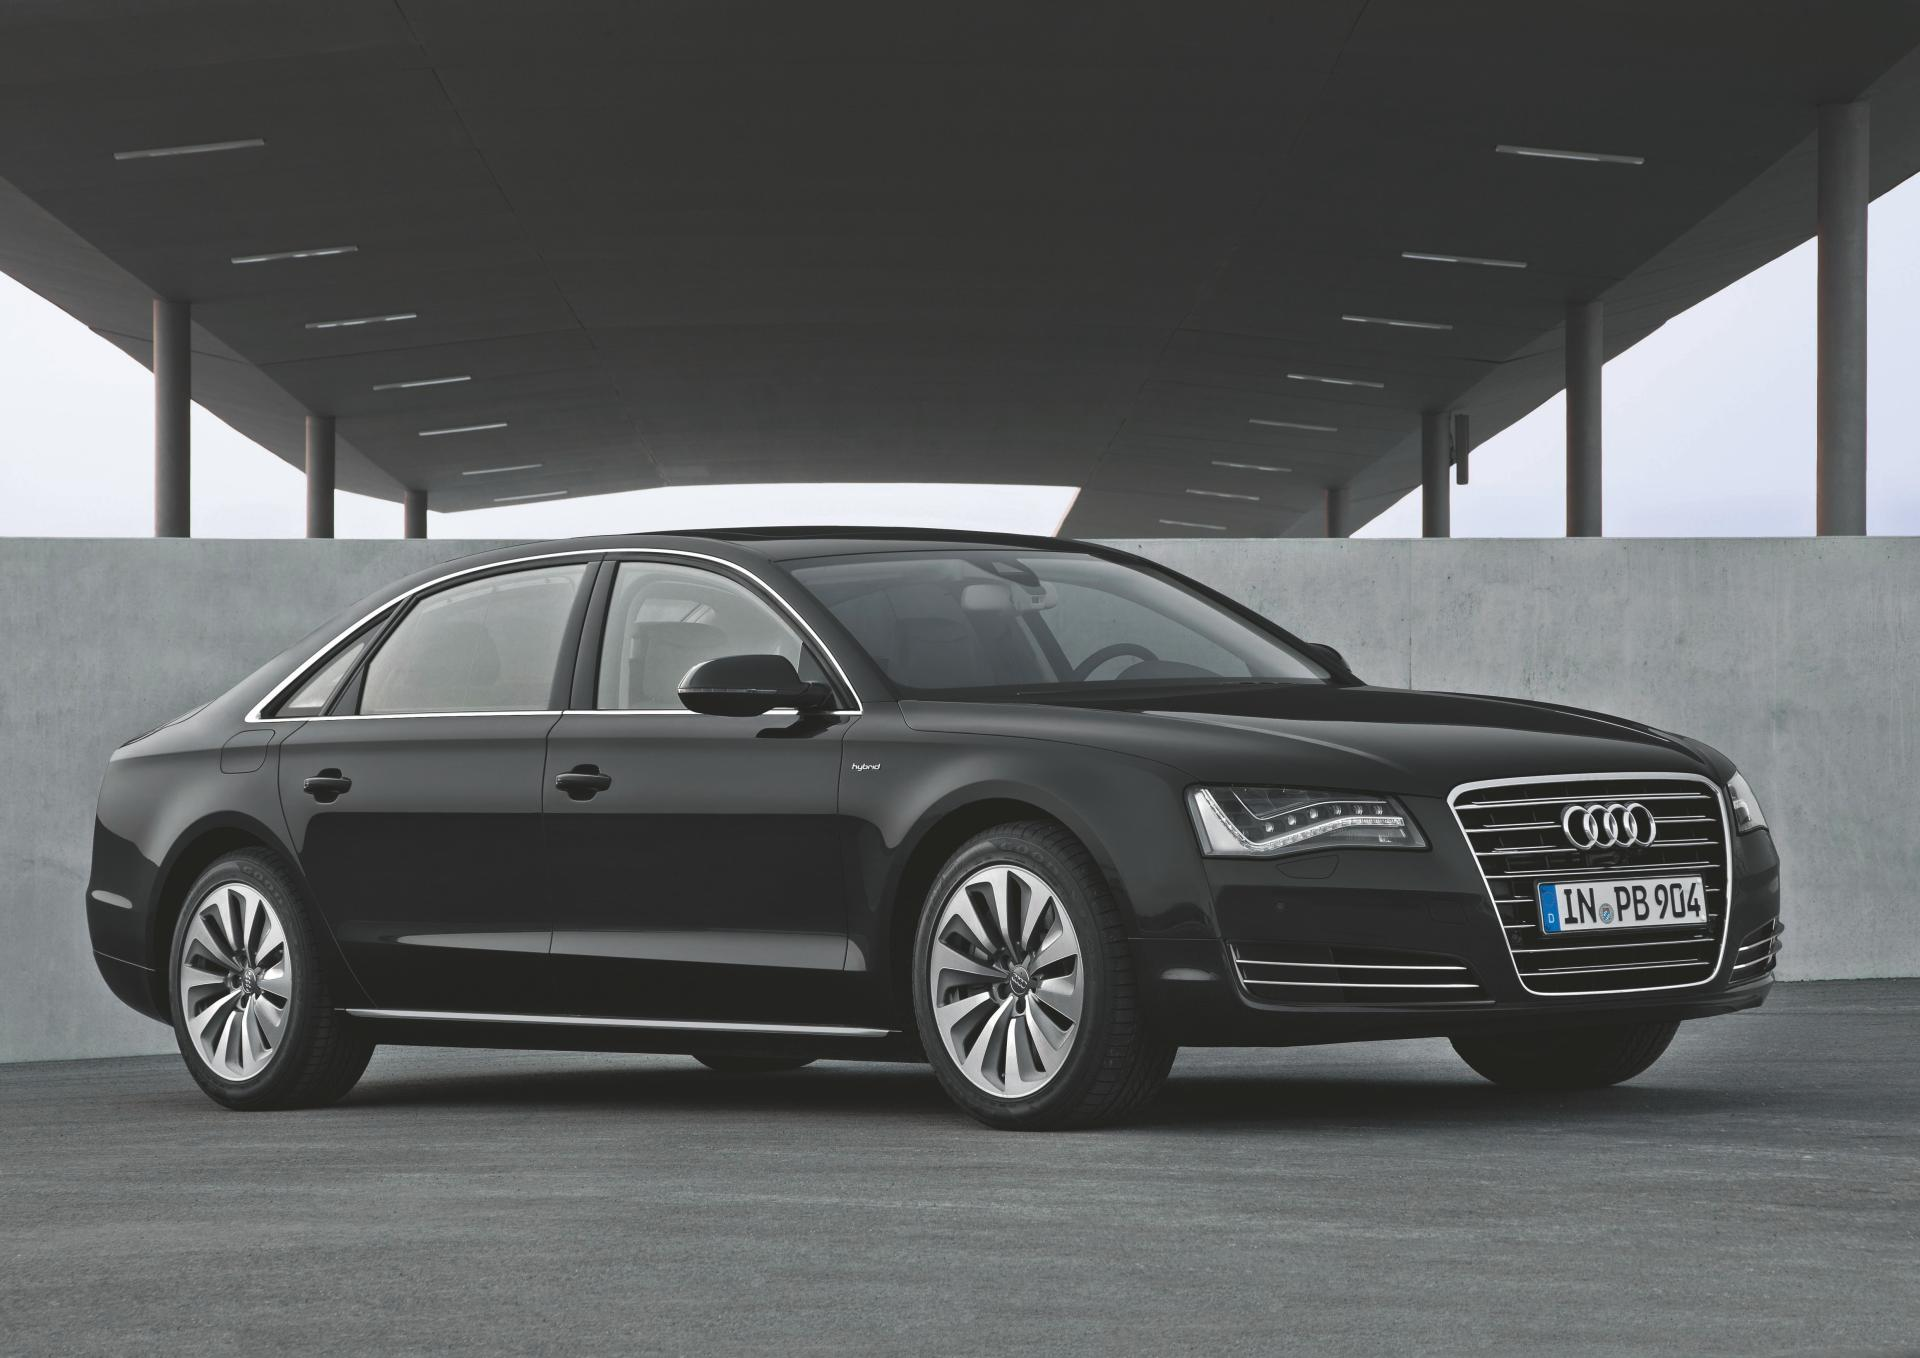 2013 Audi A8 L News and Information